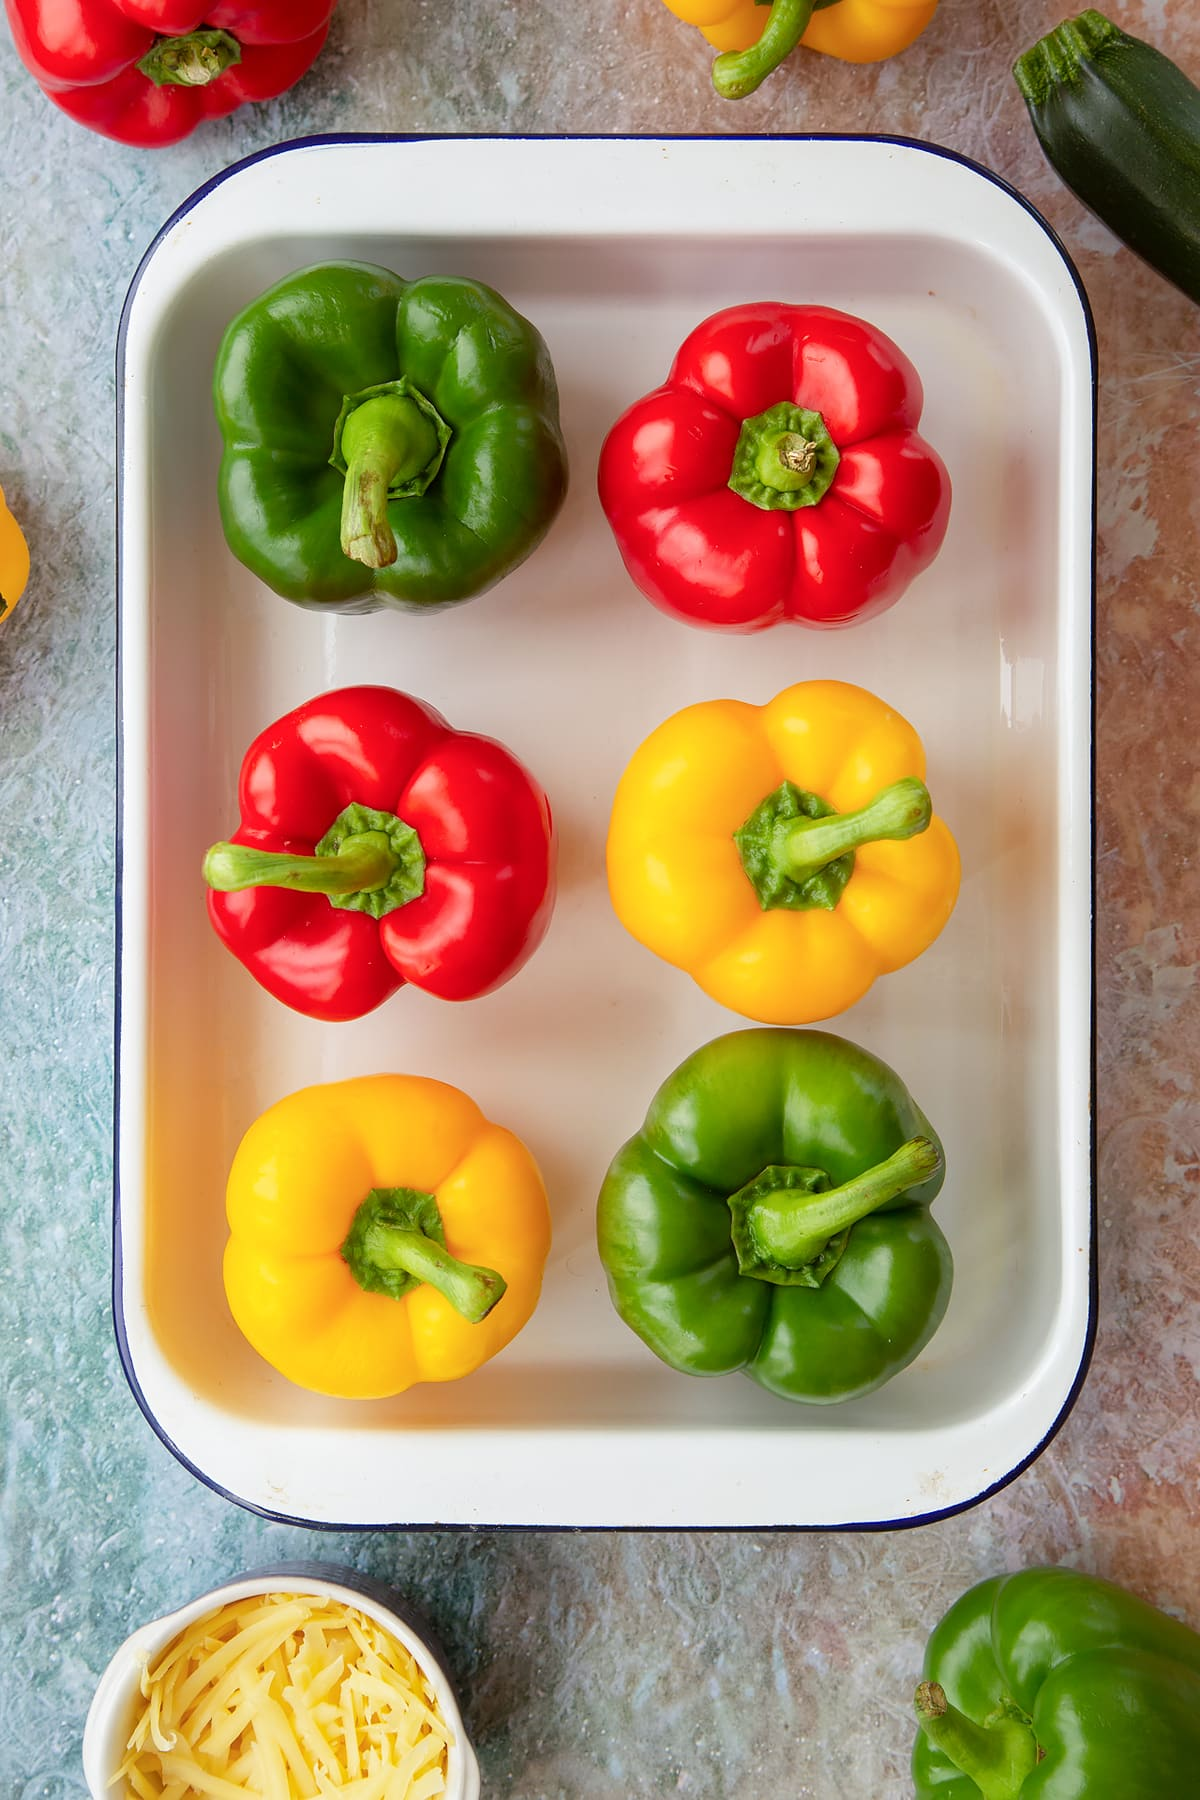 Six red, green and yellow peppers in a white roasting tray. Ingredients to make baked bean stuffed peppers surround the tray.